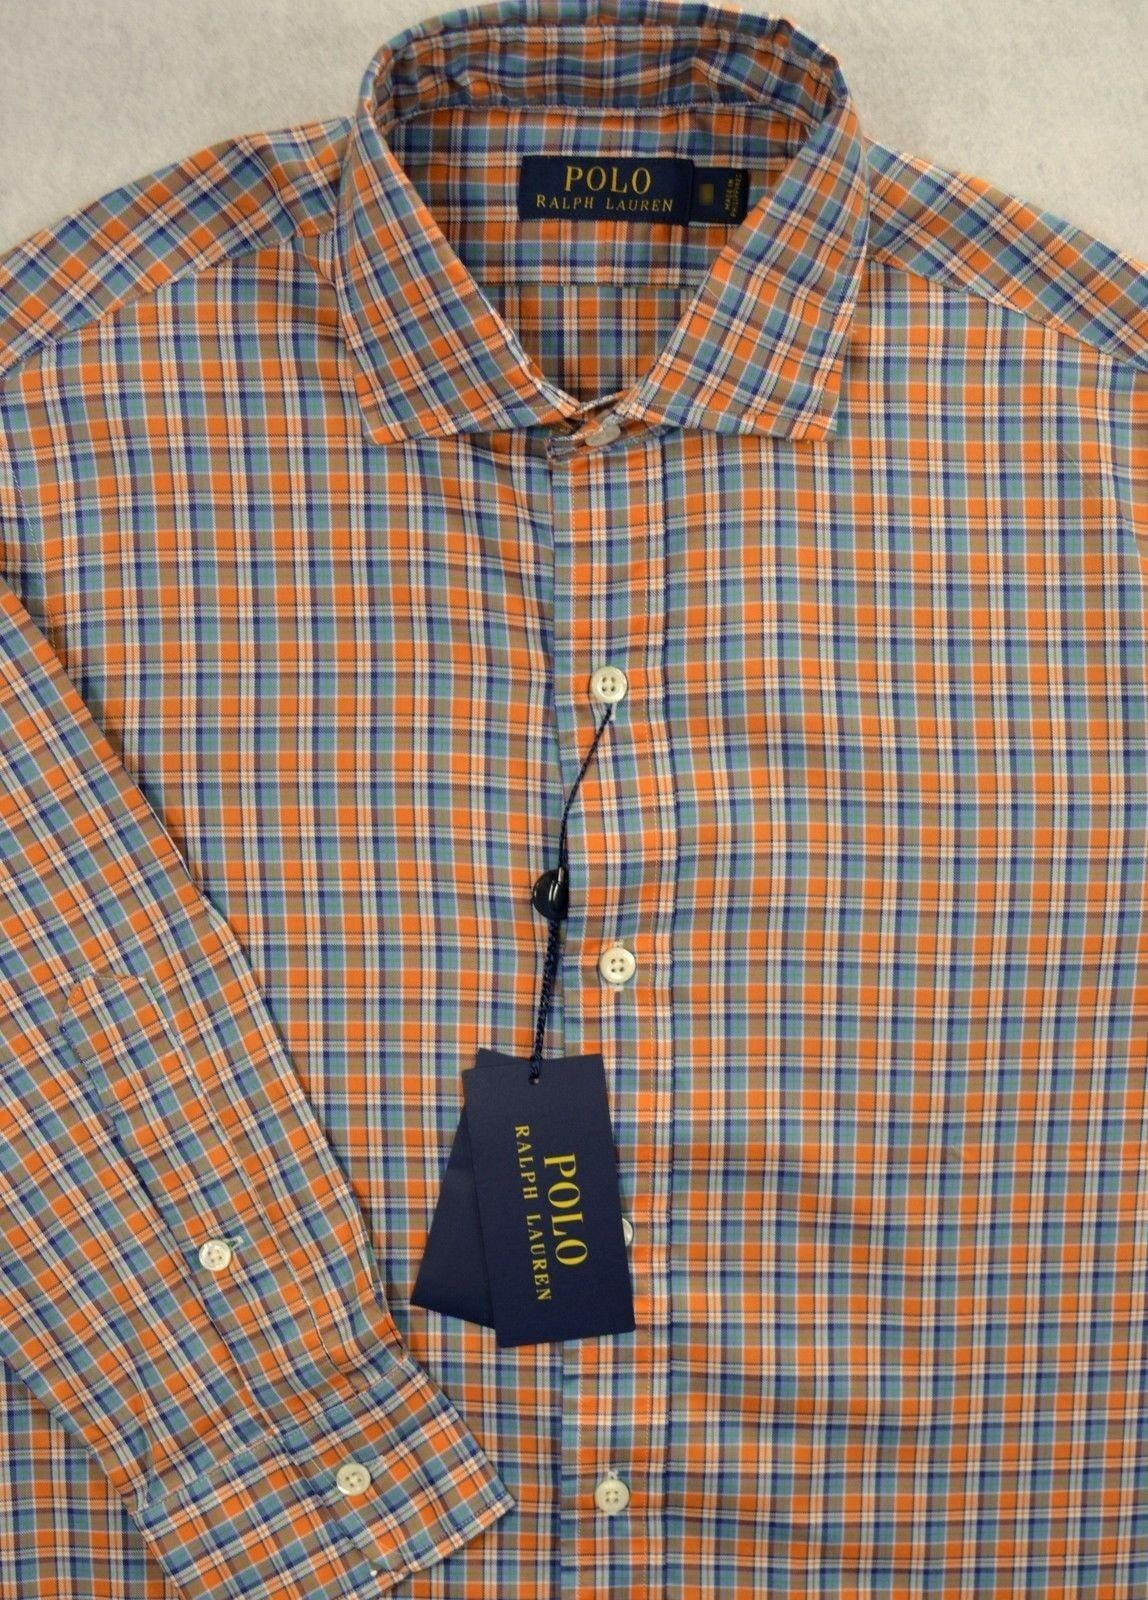 ec54be97 Polo Ralph Lauren Lightweight Oxford Shirt M & L NWT Button-Front ...